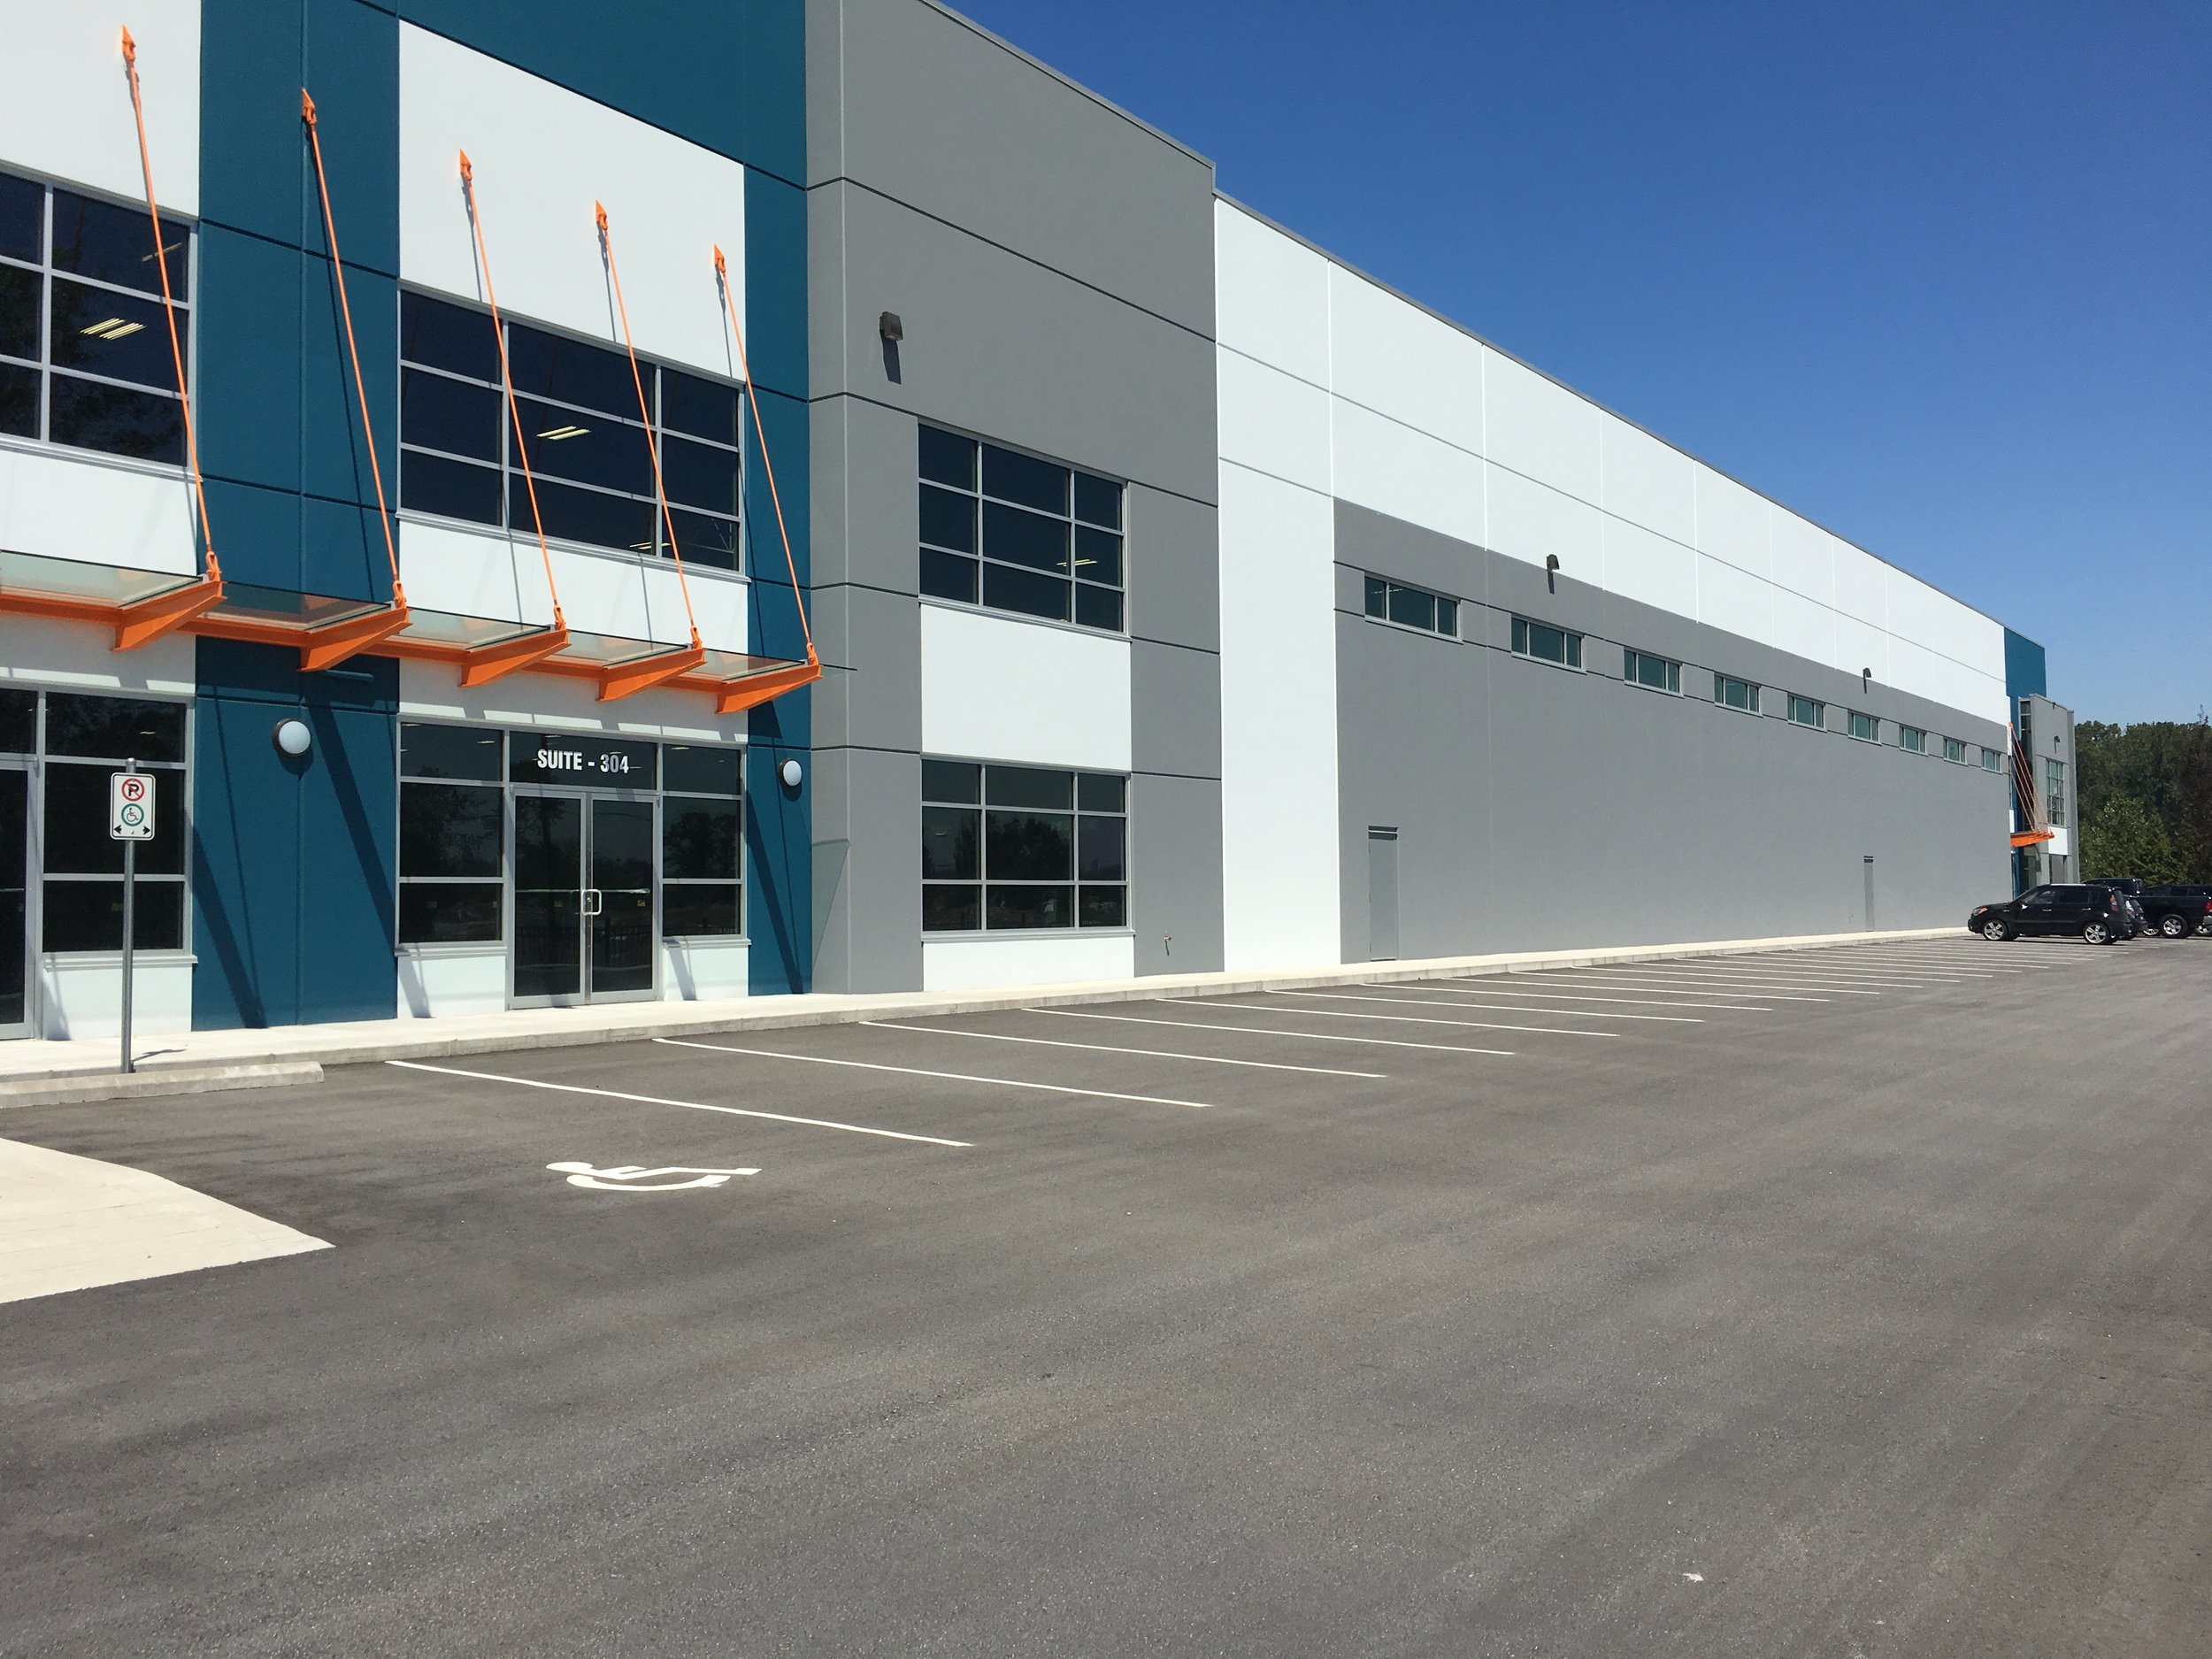 The facility is a brand new, 250,000 square foot warehouse, with a stylish facade and plenty of service bays at the rear.